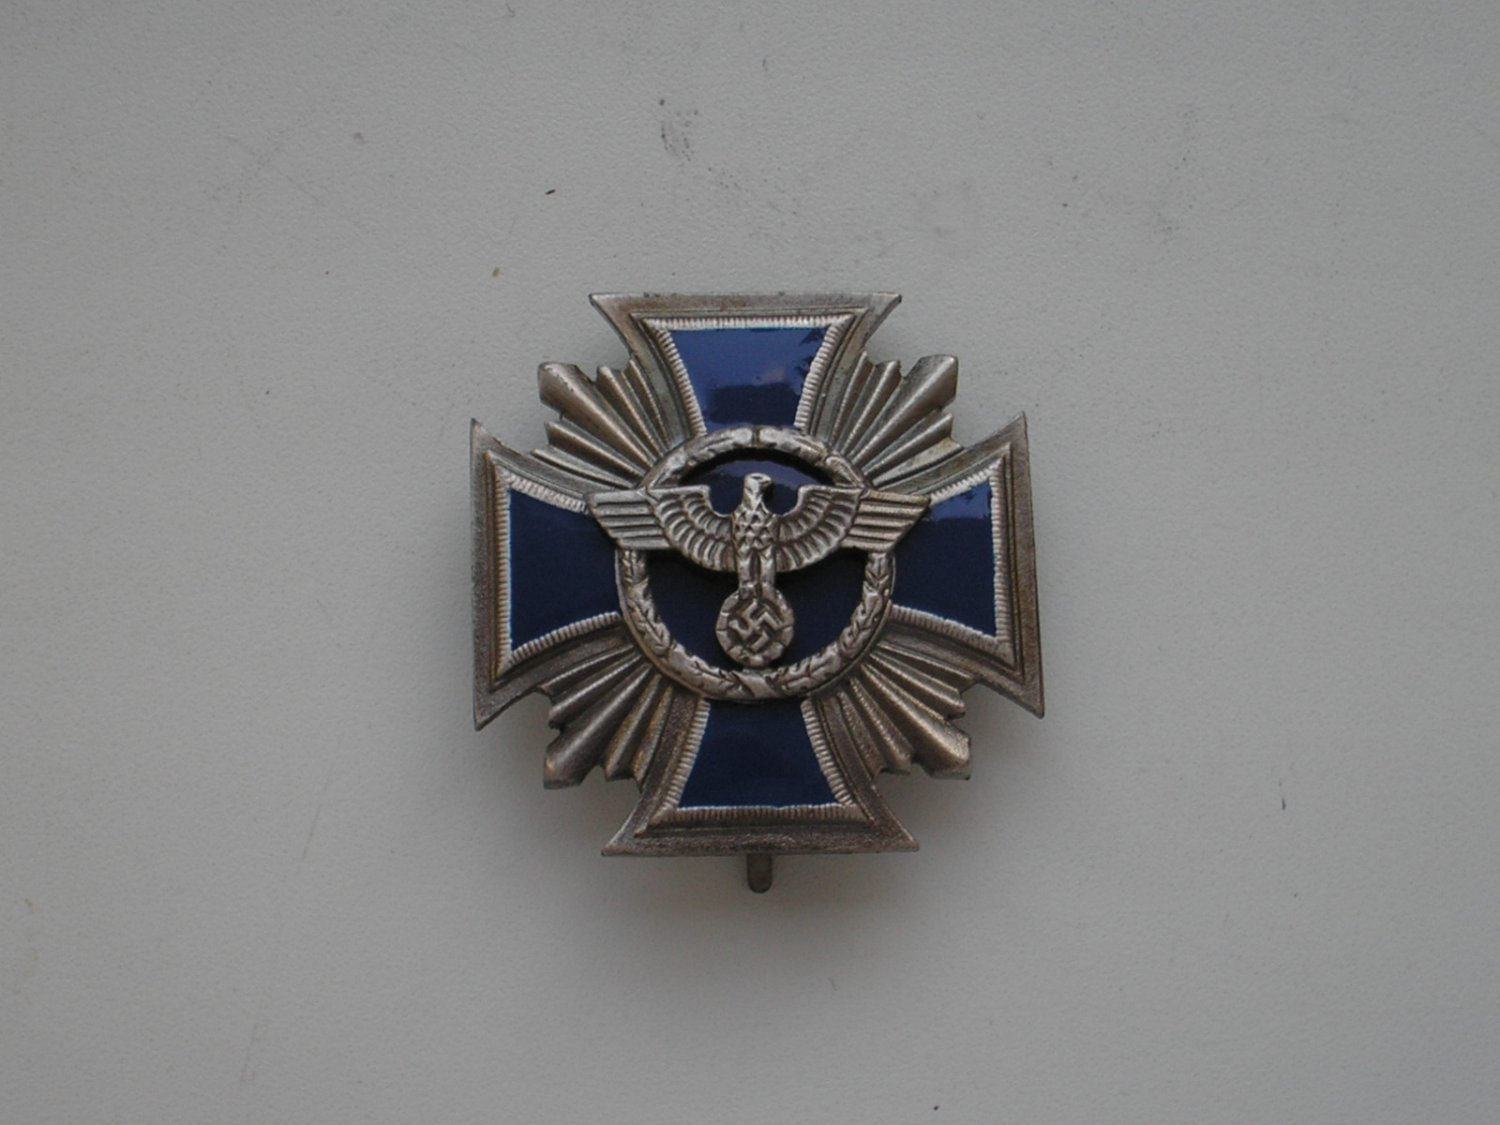 WWII THE GERMAN SILVER BADGE LONG SERVICE AWARDS OF THE NSDAP